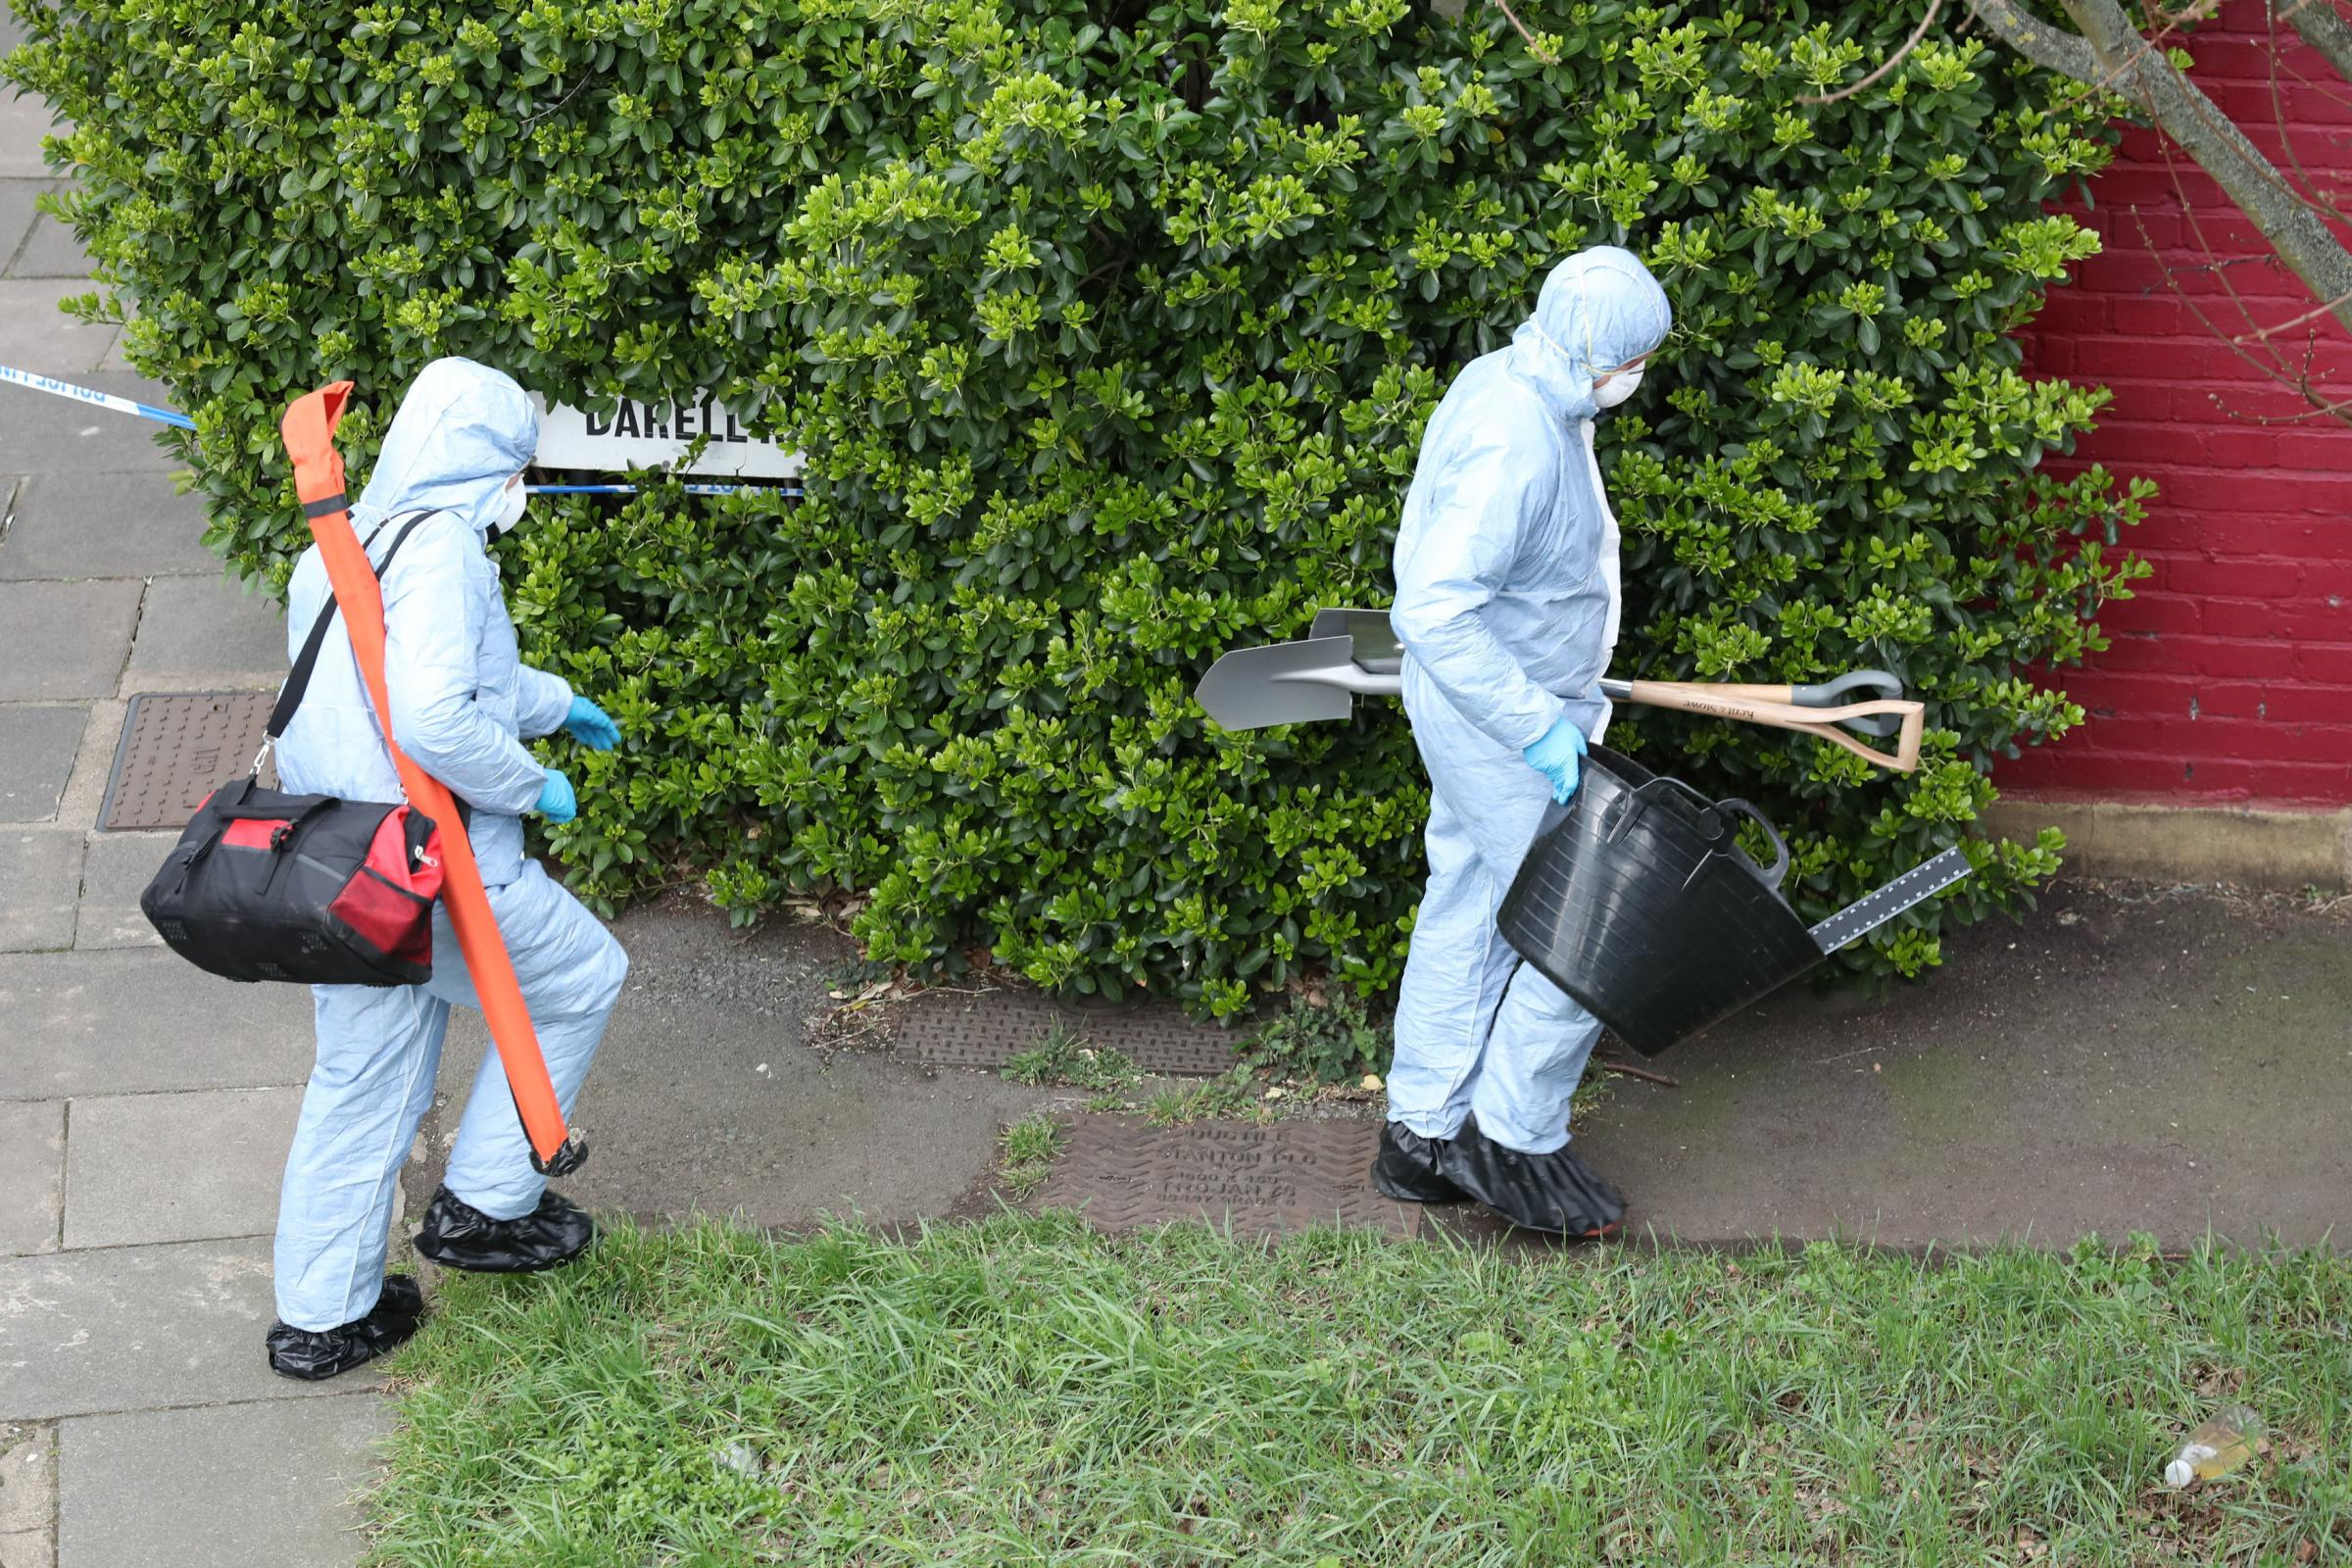 Police forensics at a property on Darell Road in Kew. © PA